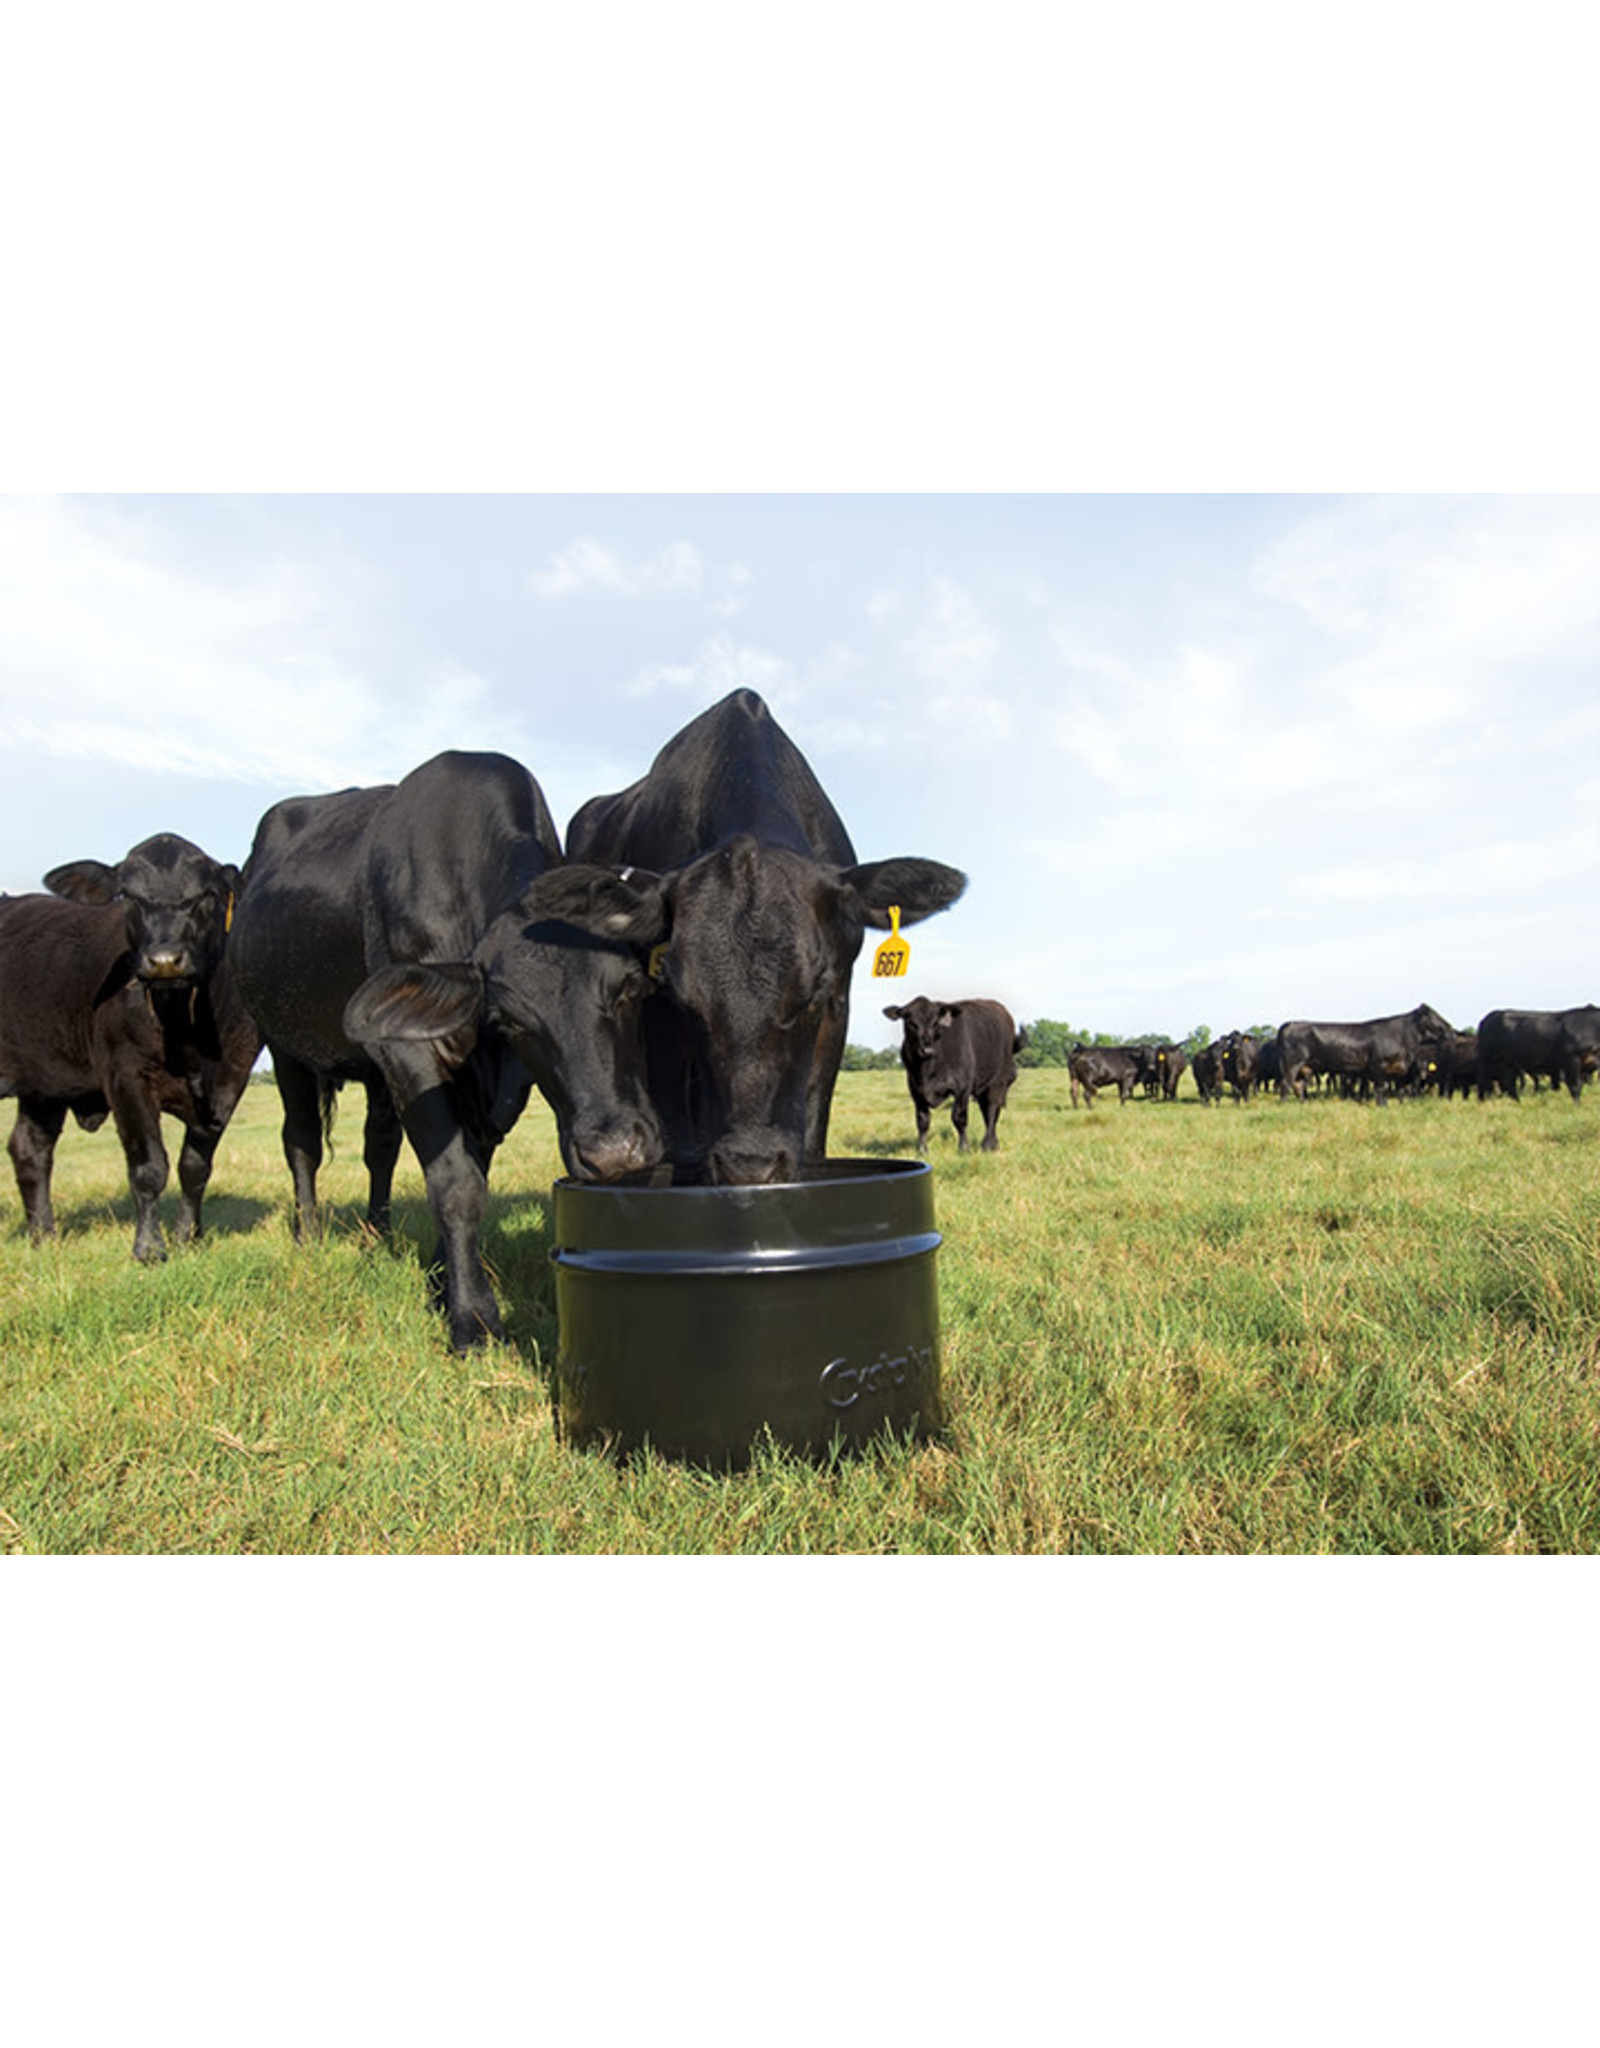 Breed Up 28% Steel 250lbs      Ideal for heifers, cows, and bulls. Use before calving to aid in the final weeks of gestation to help determine the health and performance of her calf & her clean up. Also use before breeding to insure a proper catch.